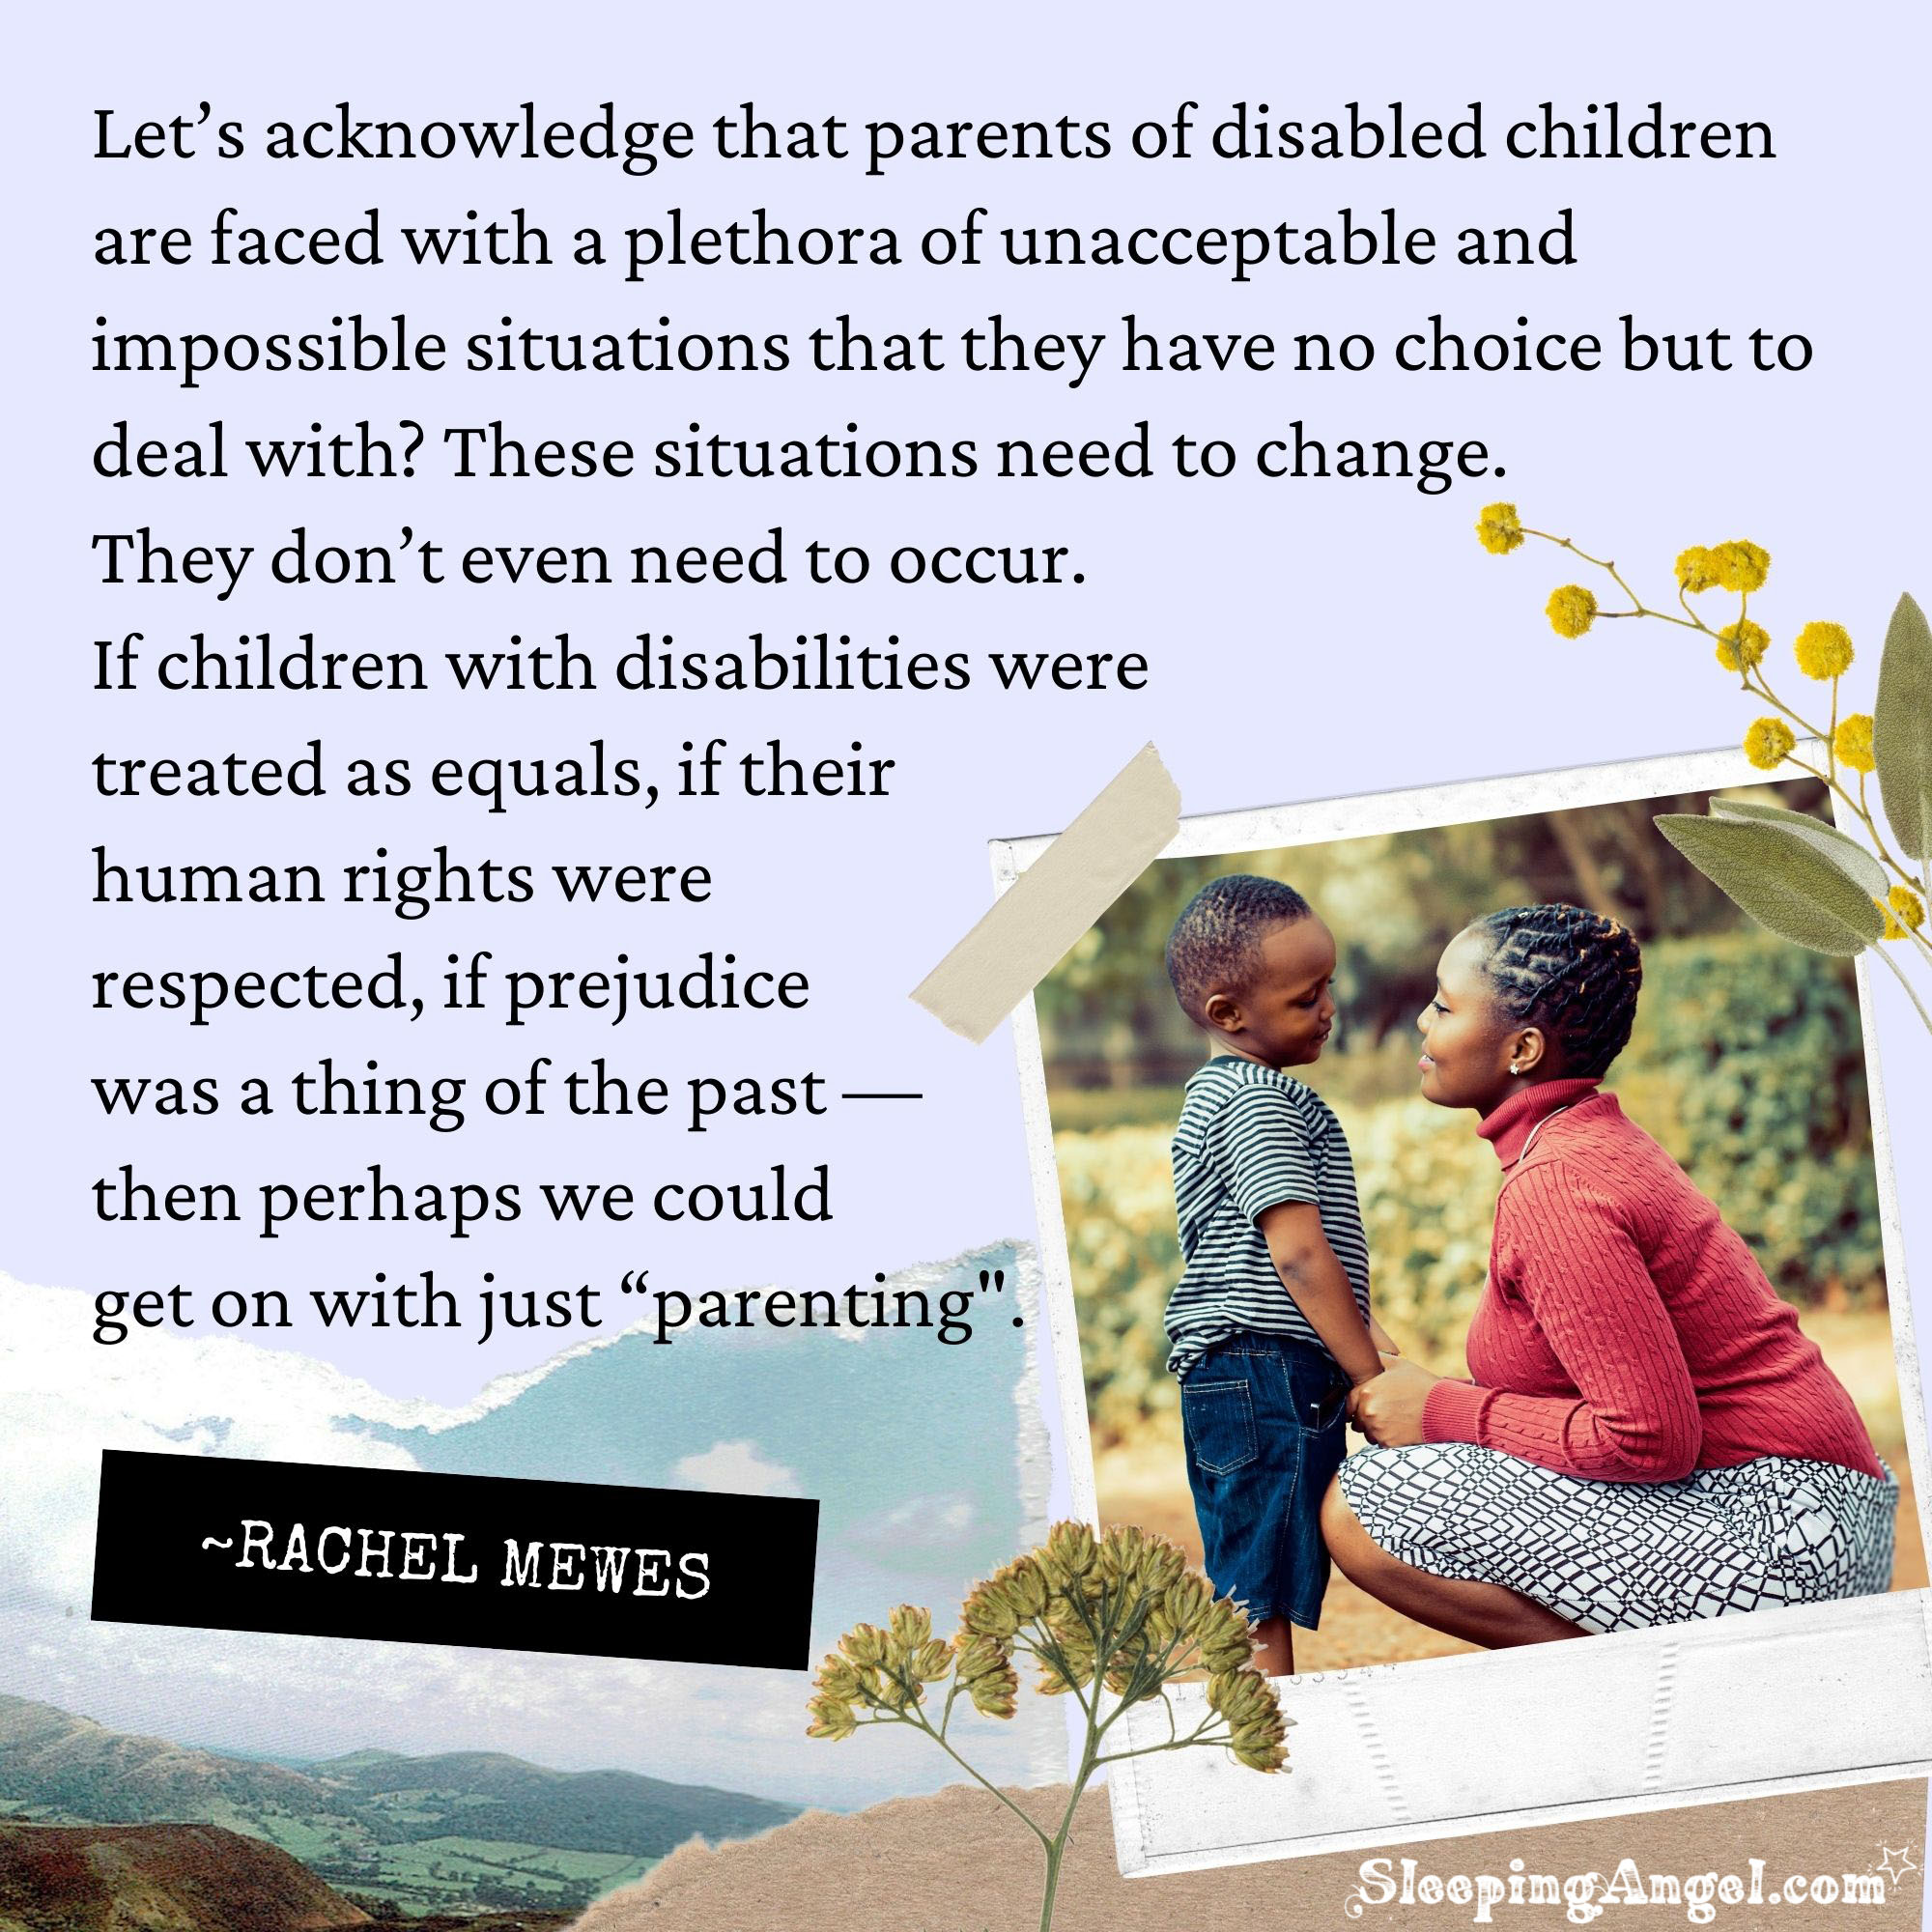 Parenting Children with Disabilities Quote